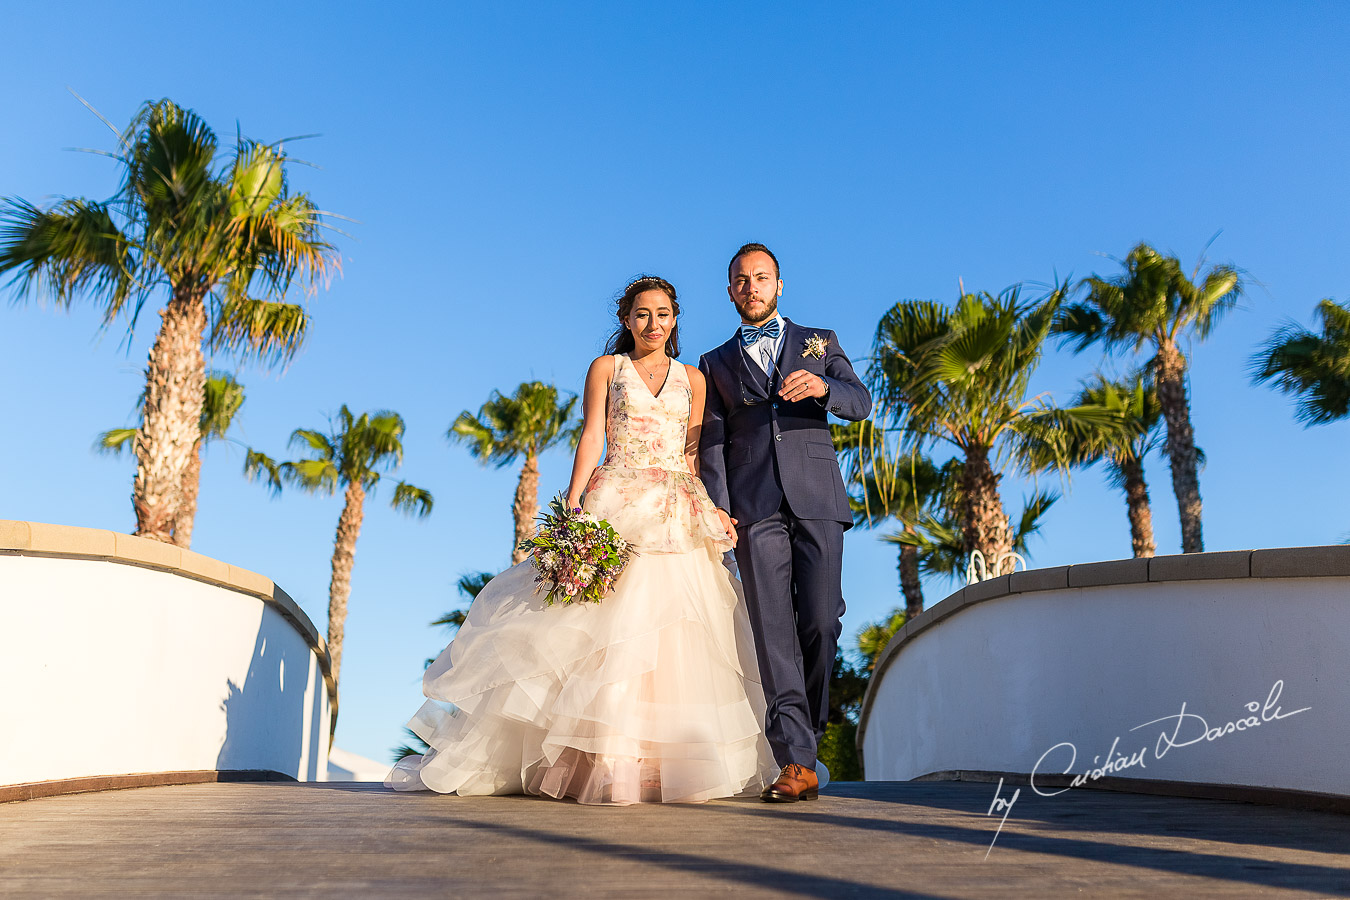 Genuine moments with the bride and groom immediately after the ceremony, as part of an Exclusive Wedding photography at Grand Resort Limassol, captured by Cyprus Wedding Photographer Cristian Dascalu.